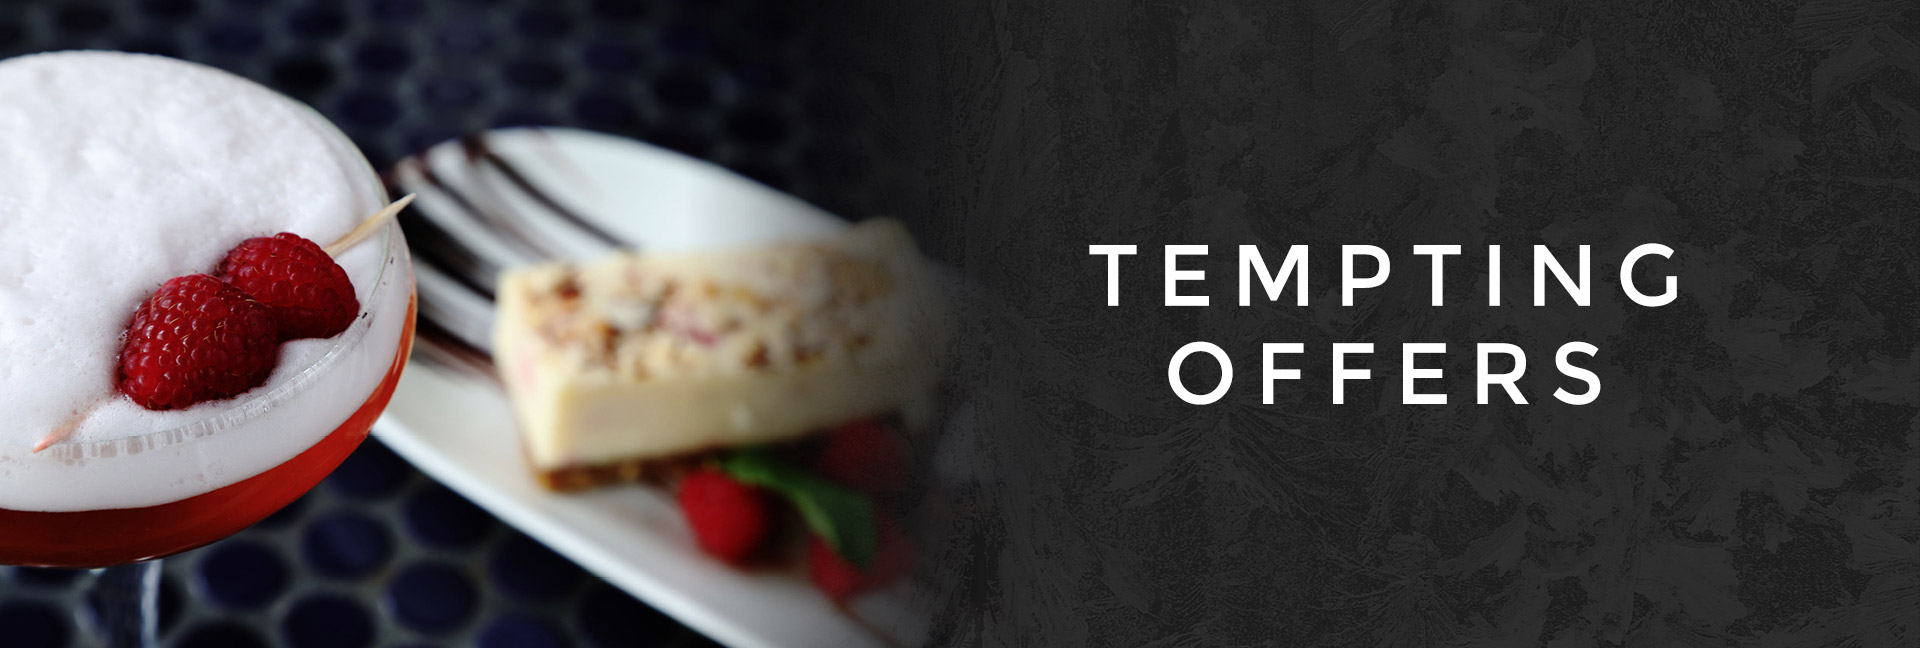 Temping offers at All Bar One Canary Wharf